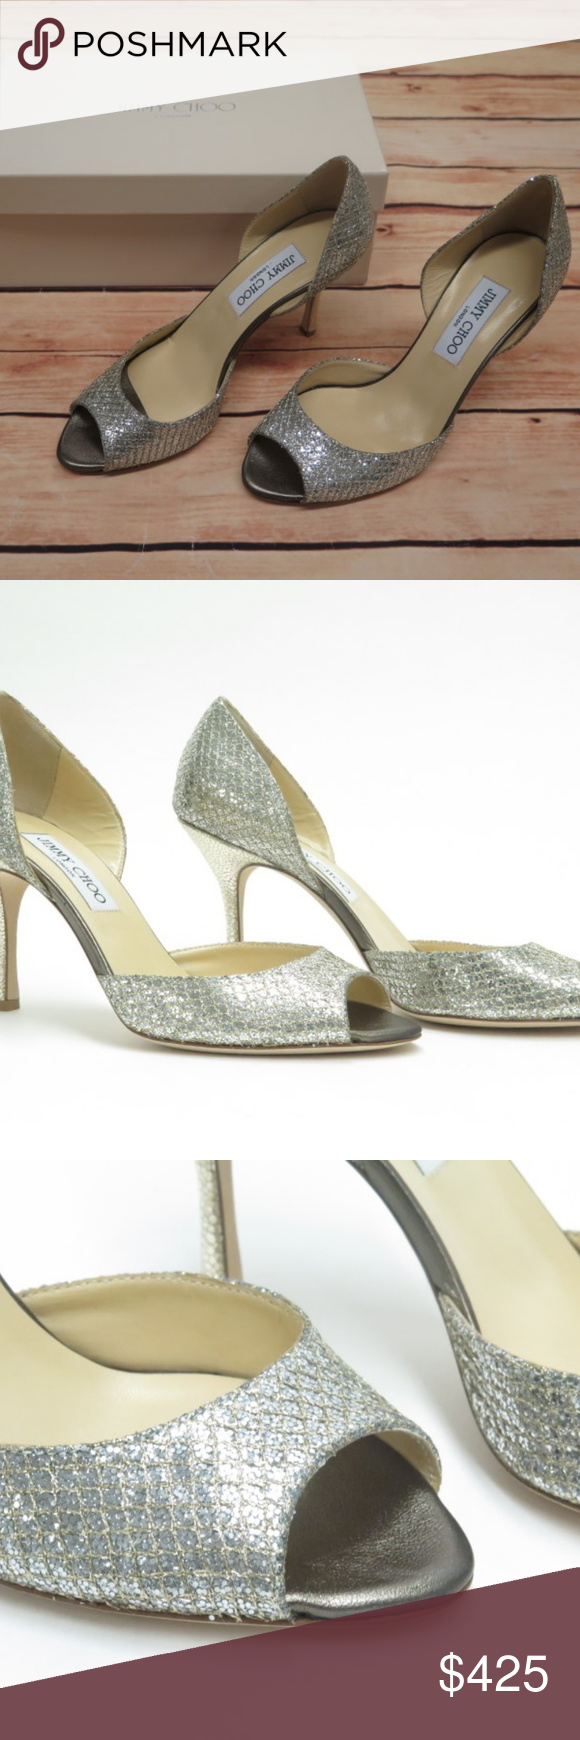 023f9fb885 Shoes Heels · Box · Jimmy Choo Logan Pump Champagne Glitter ITEM: Jimmy Choo  Logan Pump Champagne Glitter Size 37.5